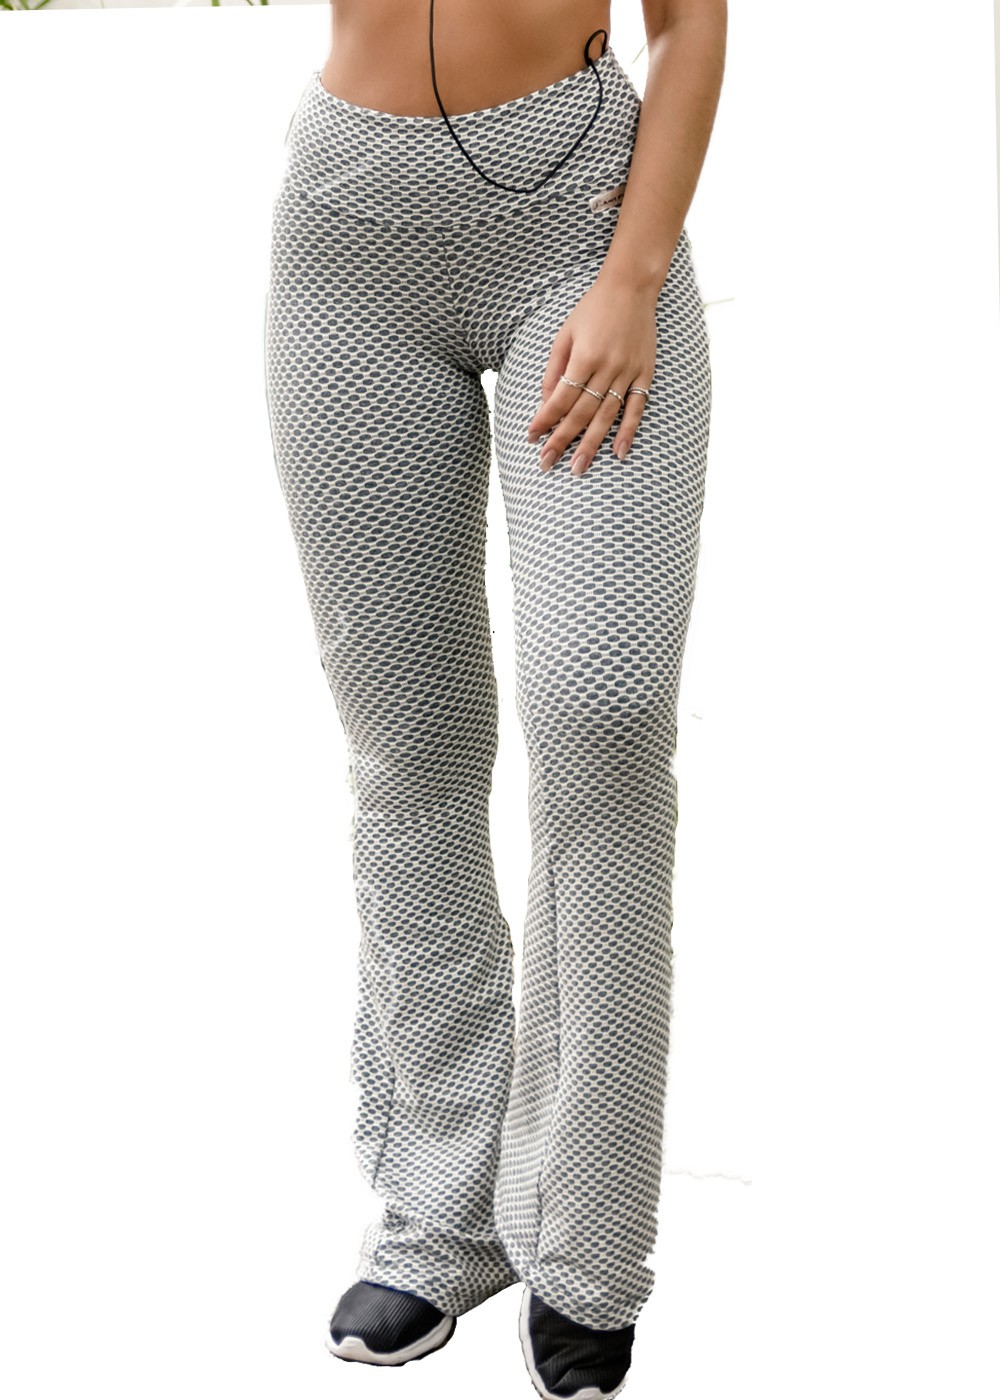 CALÇA LEGGING FLARE STAMP JUST FIT - GEO CINZA